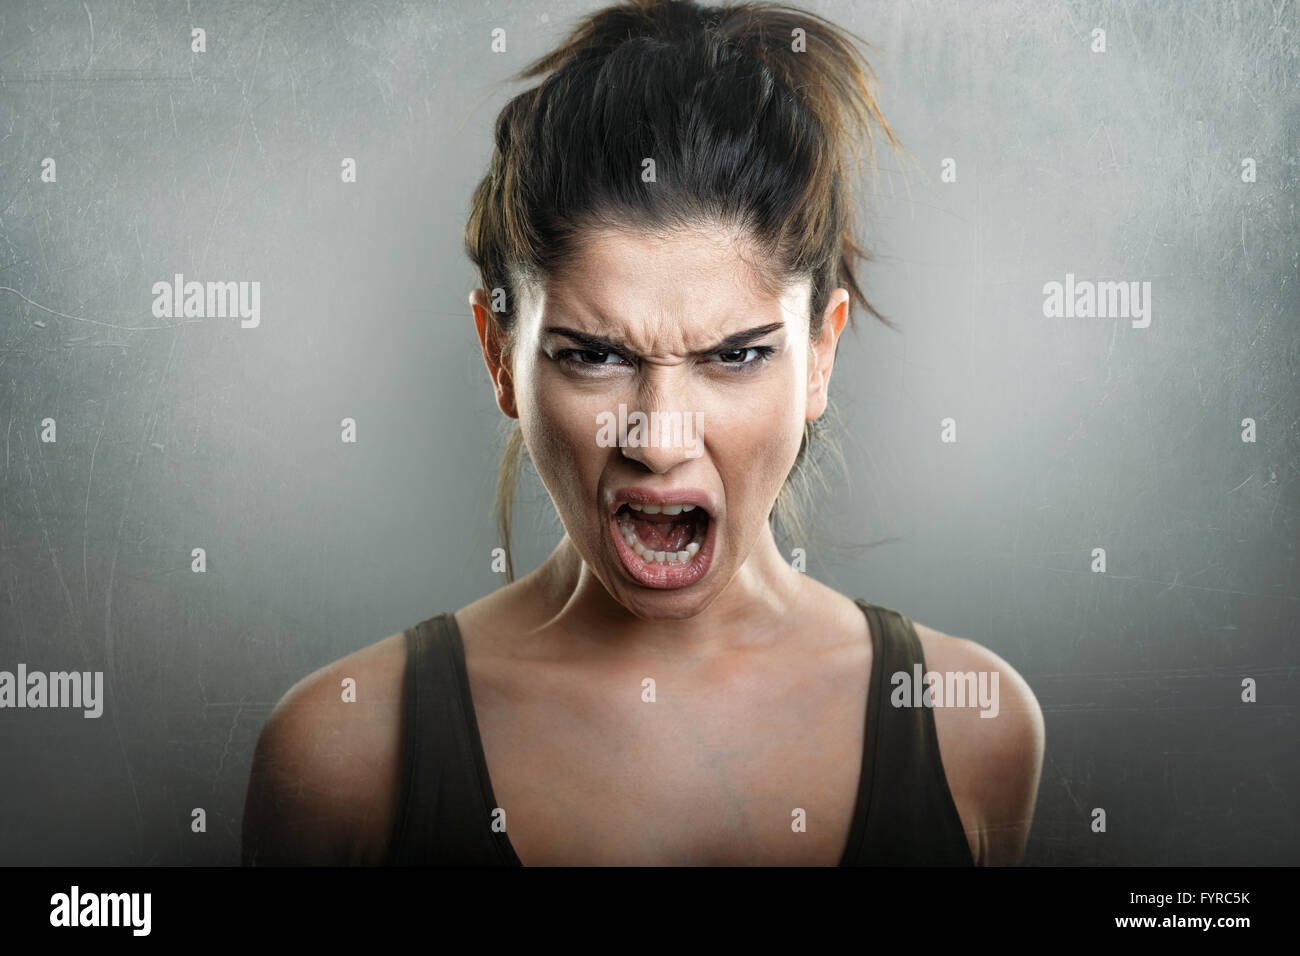 Scream of angry upset young woman - Stock Image